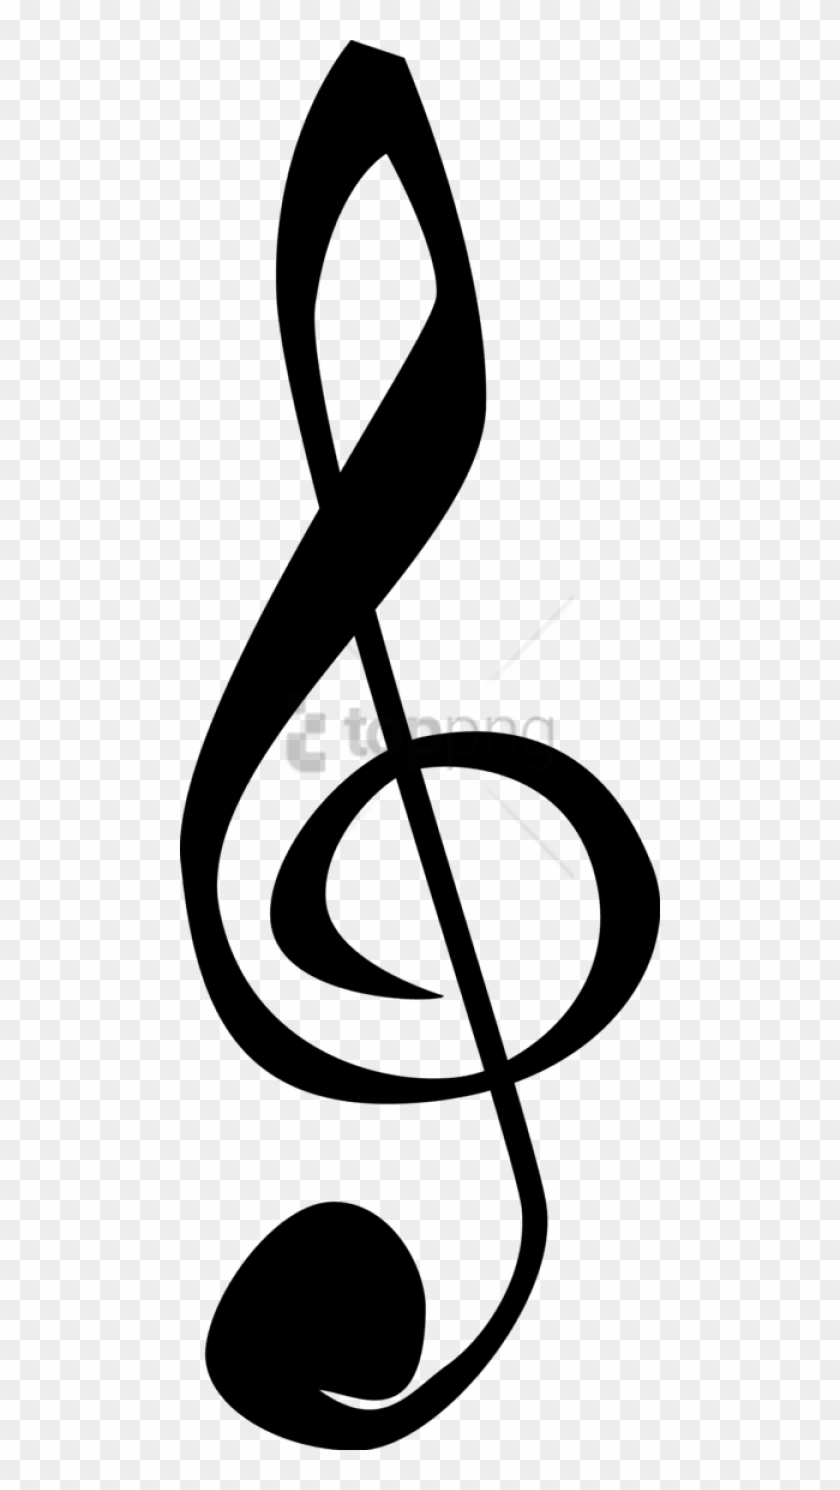 Free Png Music Notes Png Clipart Png Image With Transparent Letra De Musica Simbolo Png Download 480x1410 2407420 Pngfind